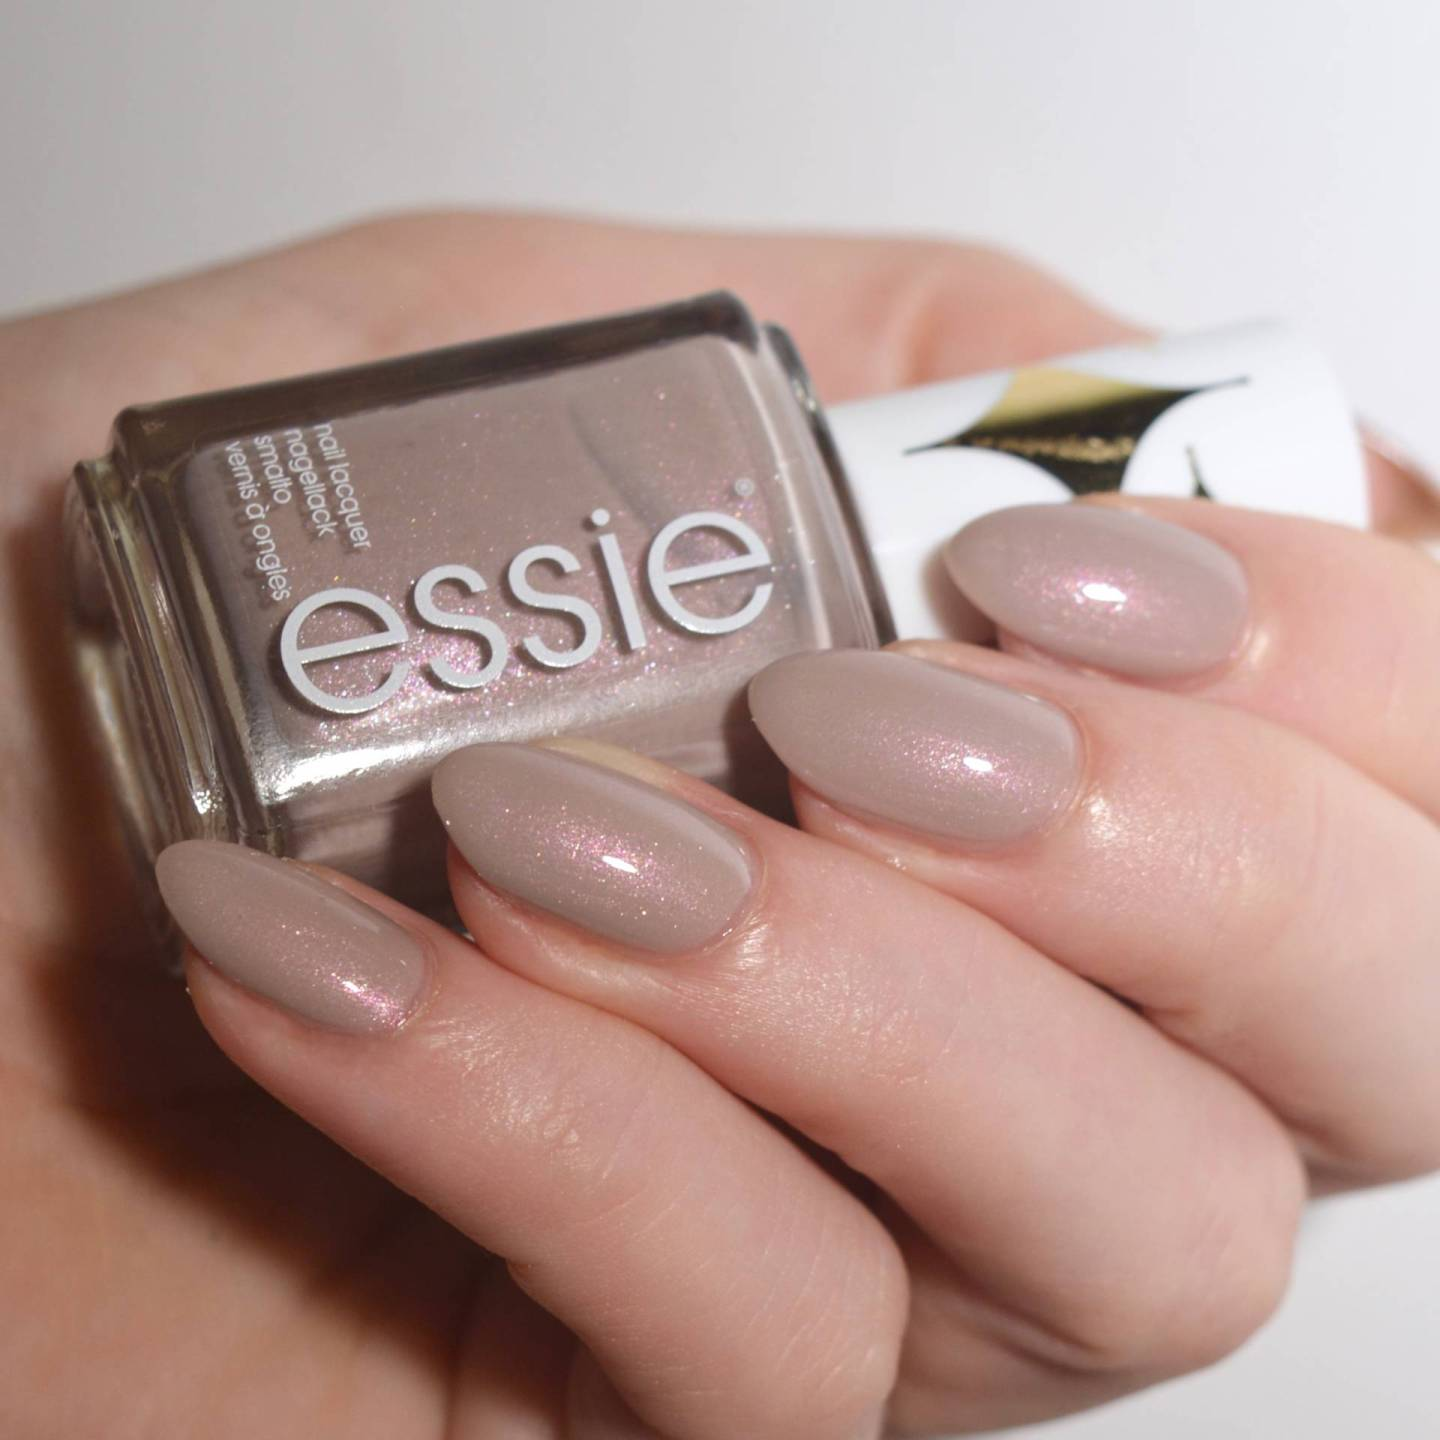 Essie 'Sweet Tart' from the Retro Revival 2017 collection. The perfect grey polish with subtle pink shimmer.